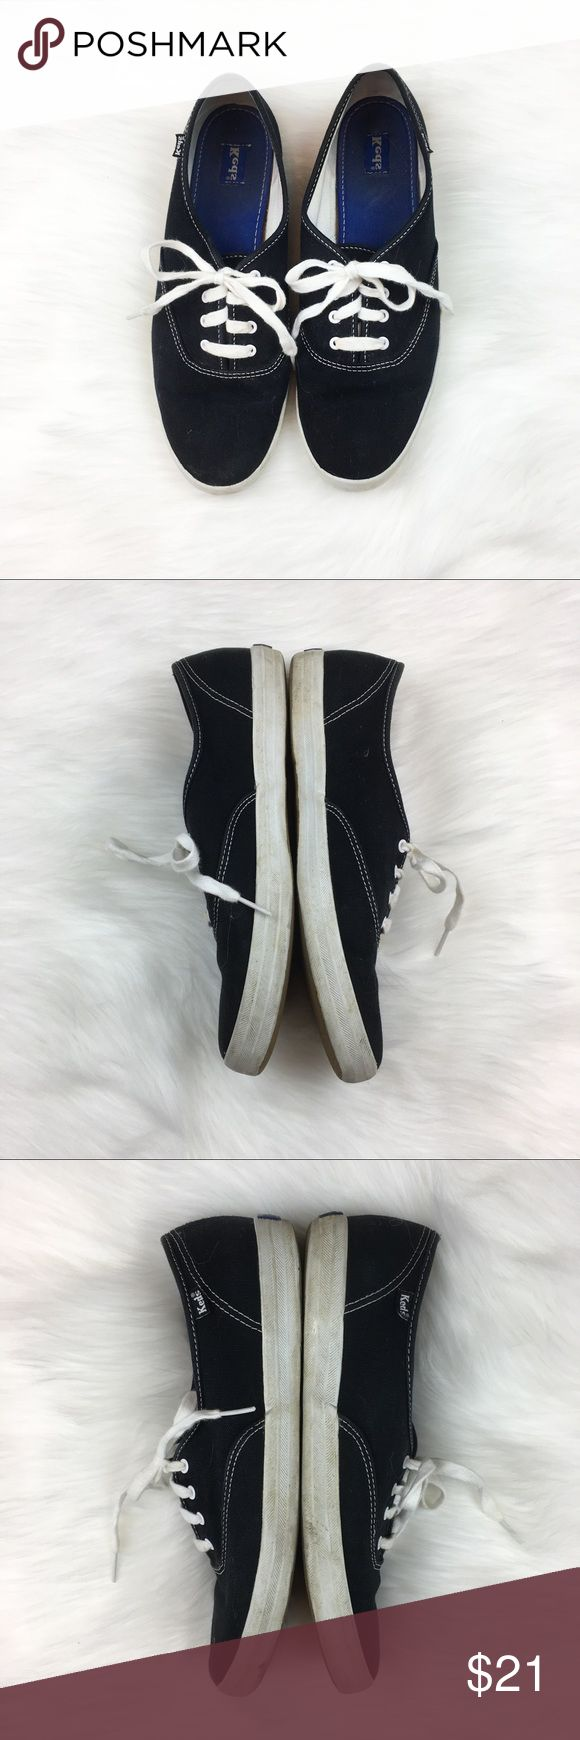 Keds Champions Originals in Black Keds Champion Originals in black. Size 10. GUC with wear. Please see photos for wear. Can be washed very easily.  No box. ❌No trades ❌ Modeling ❌No PayPal or off Posh transactions ❤️ I 💕Bundles ❤️Reasonable Offers PLEASE ❤️ Keds Shoes Sneakers